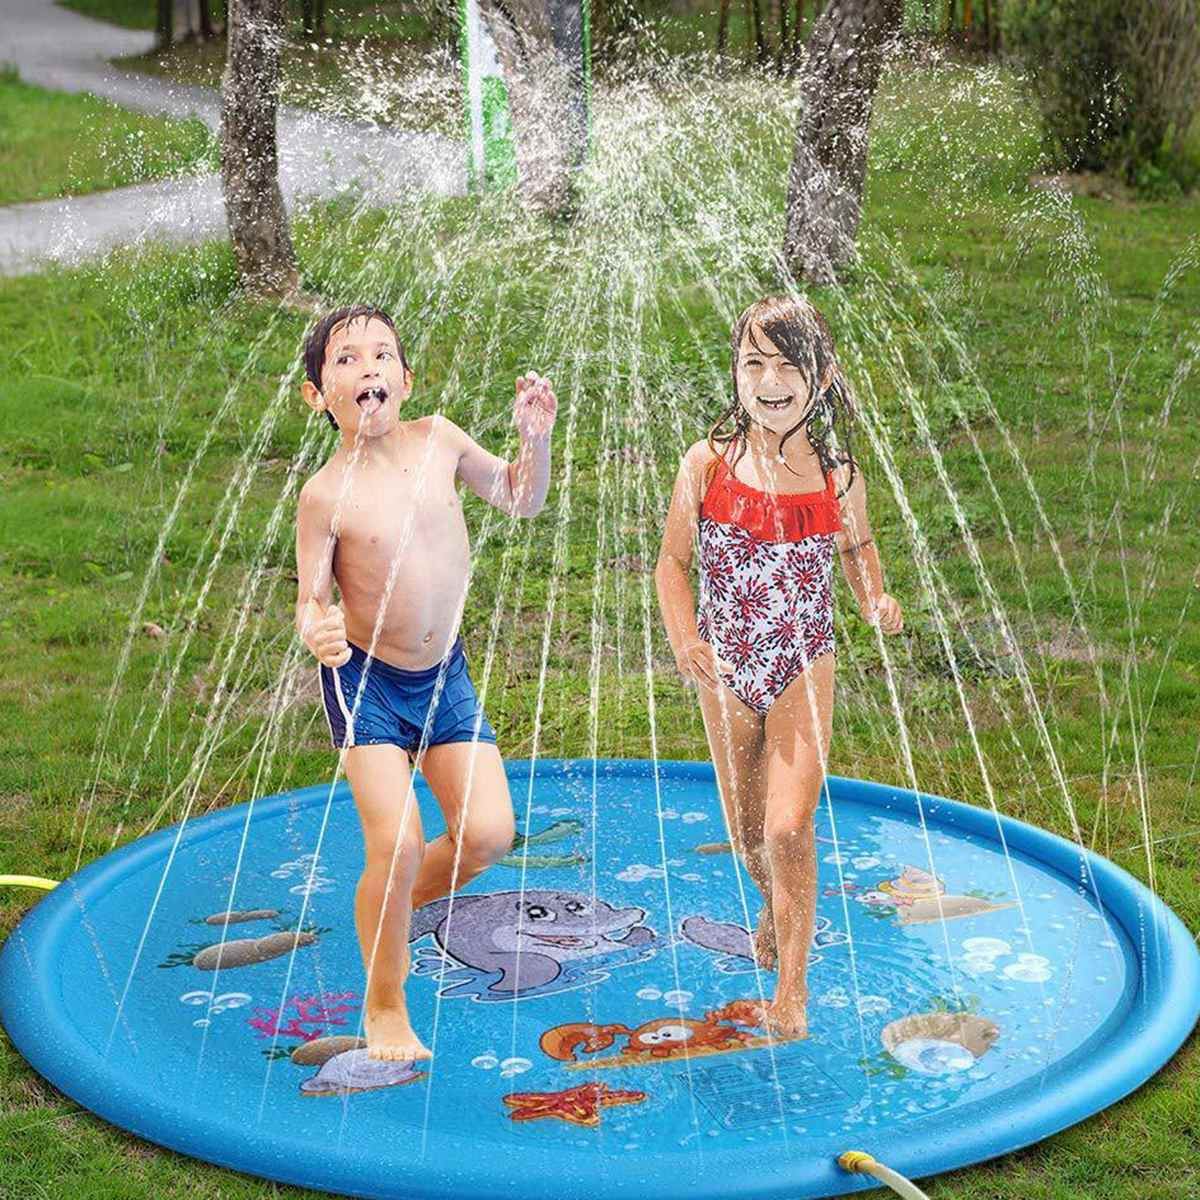 100cm Summer Kids Inflatable Round Water Splash Play Pool Playing Sprinkler Mat Yard Outdoor Fun Multicolour PVC Material